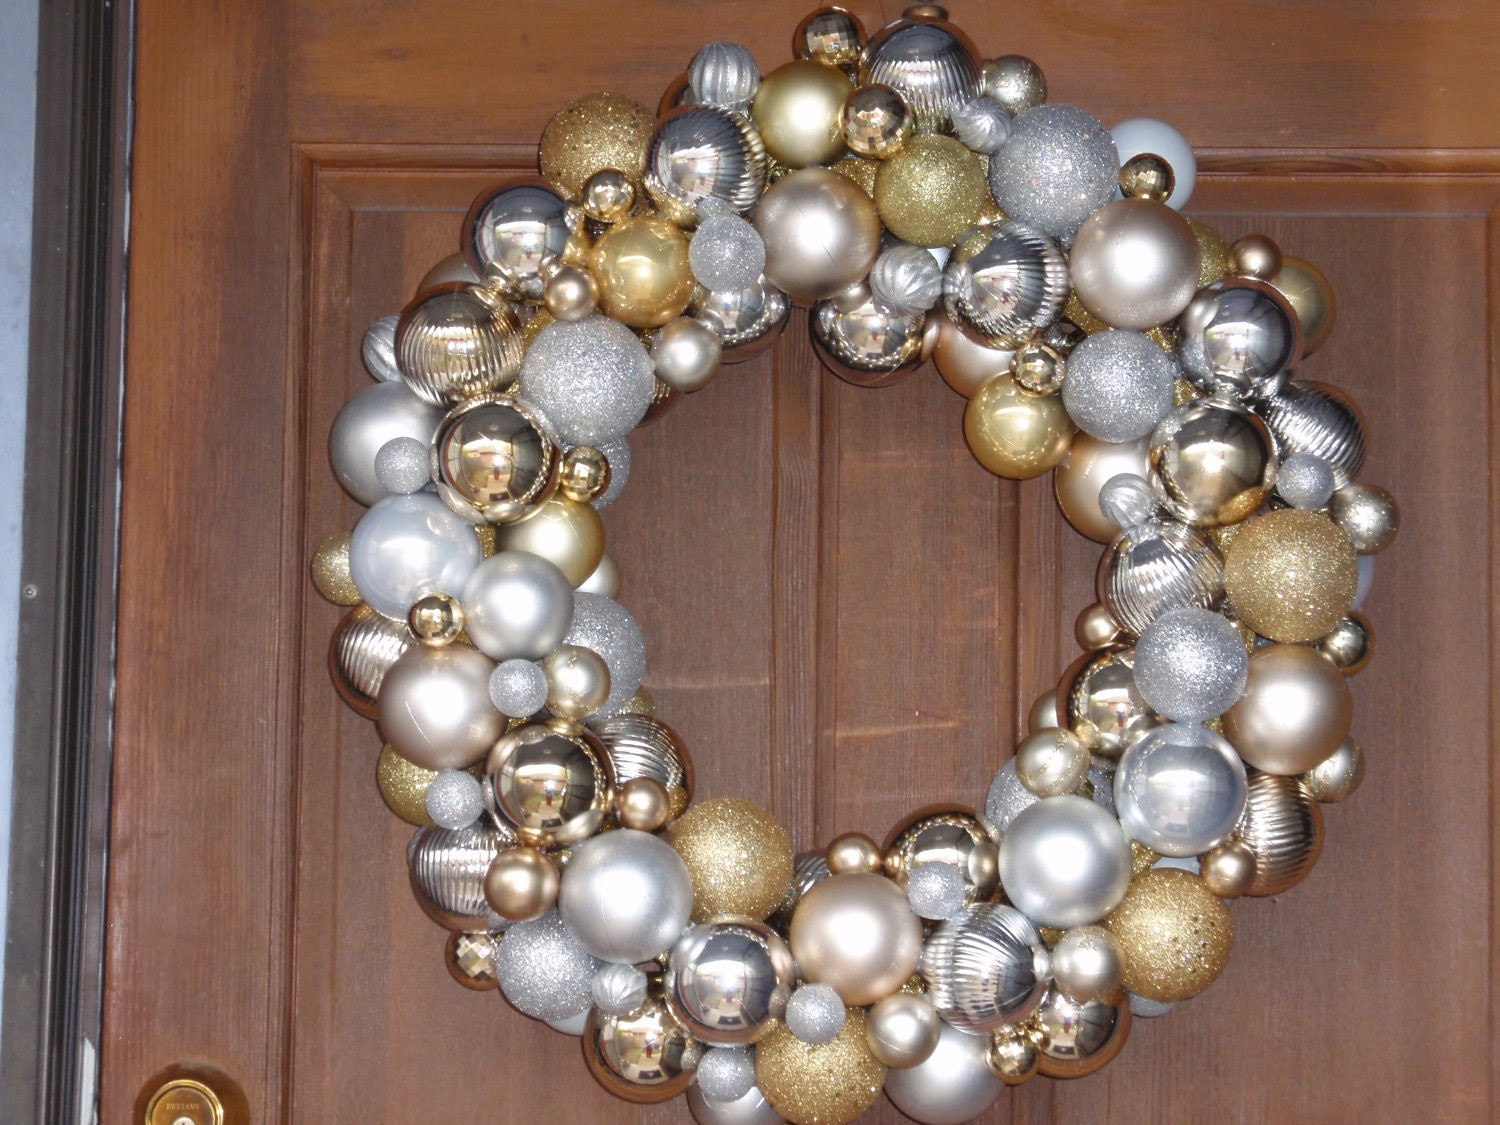 Silver and Gold Ornament Ball Wreath